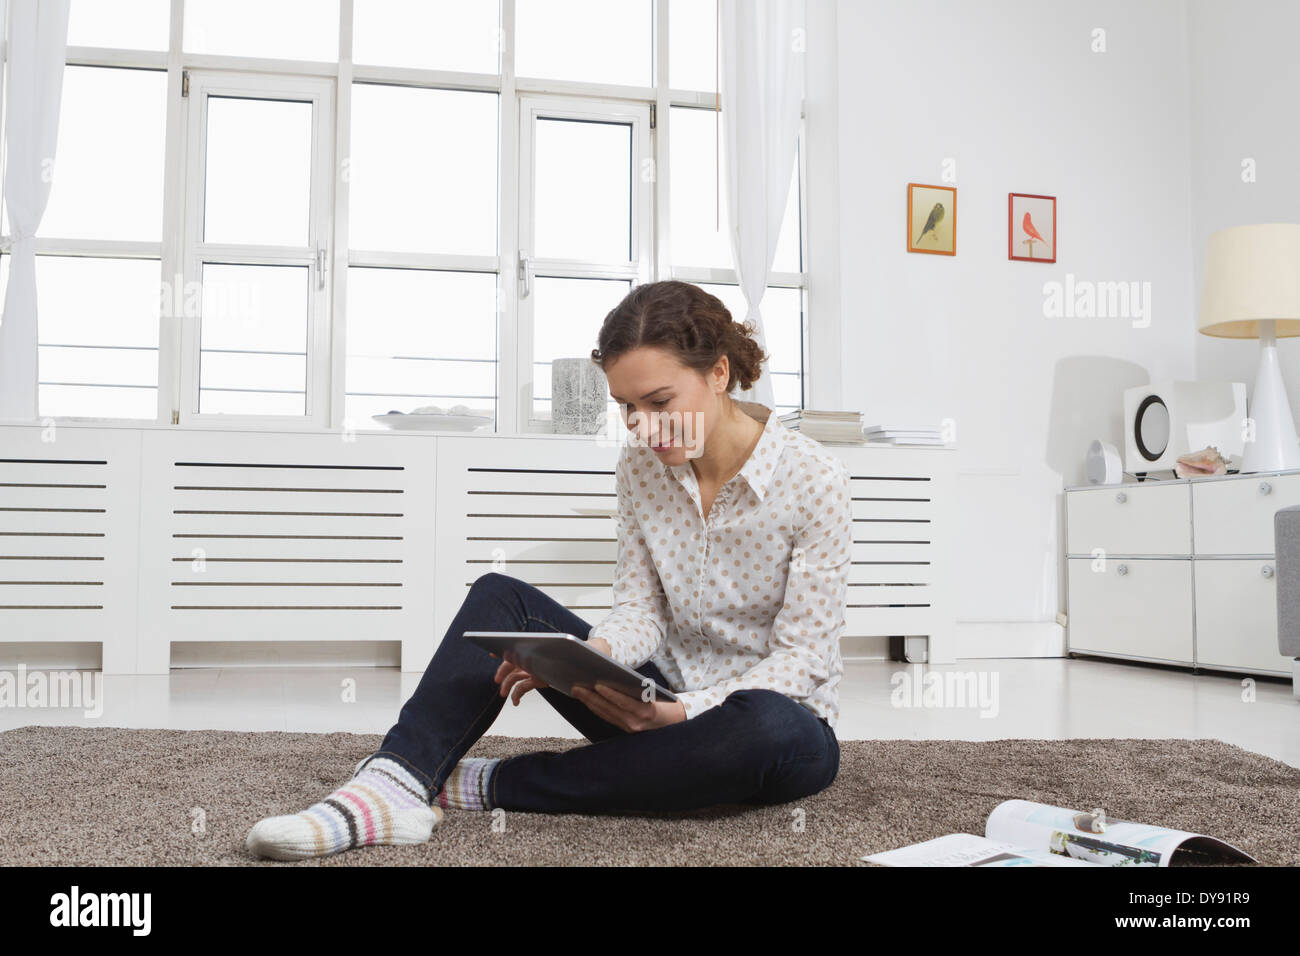 Woman at home using tablet computer - Stock Image